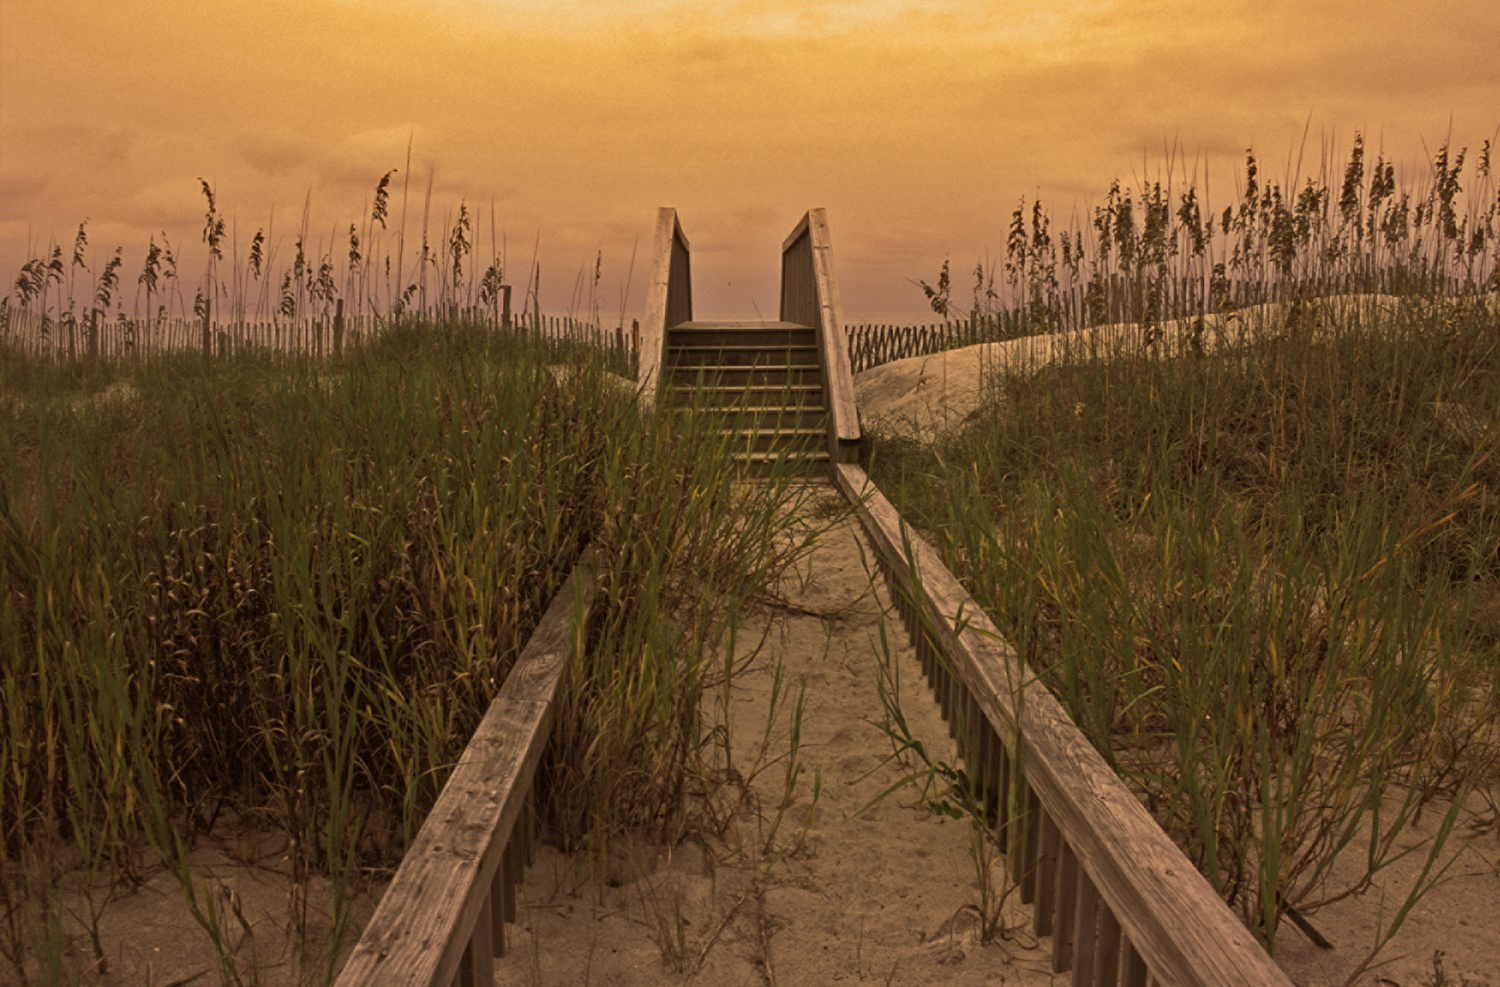 Dune walkover at Topsail Beach. By Scott D. Taylor.